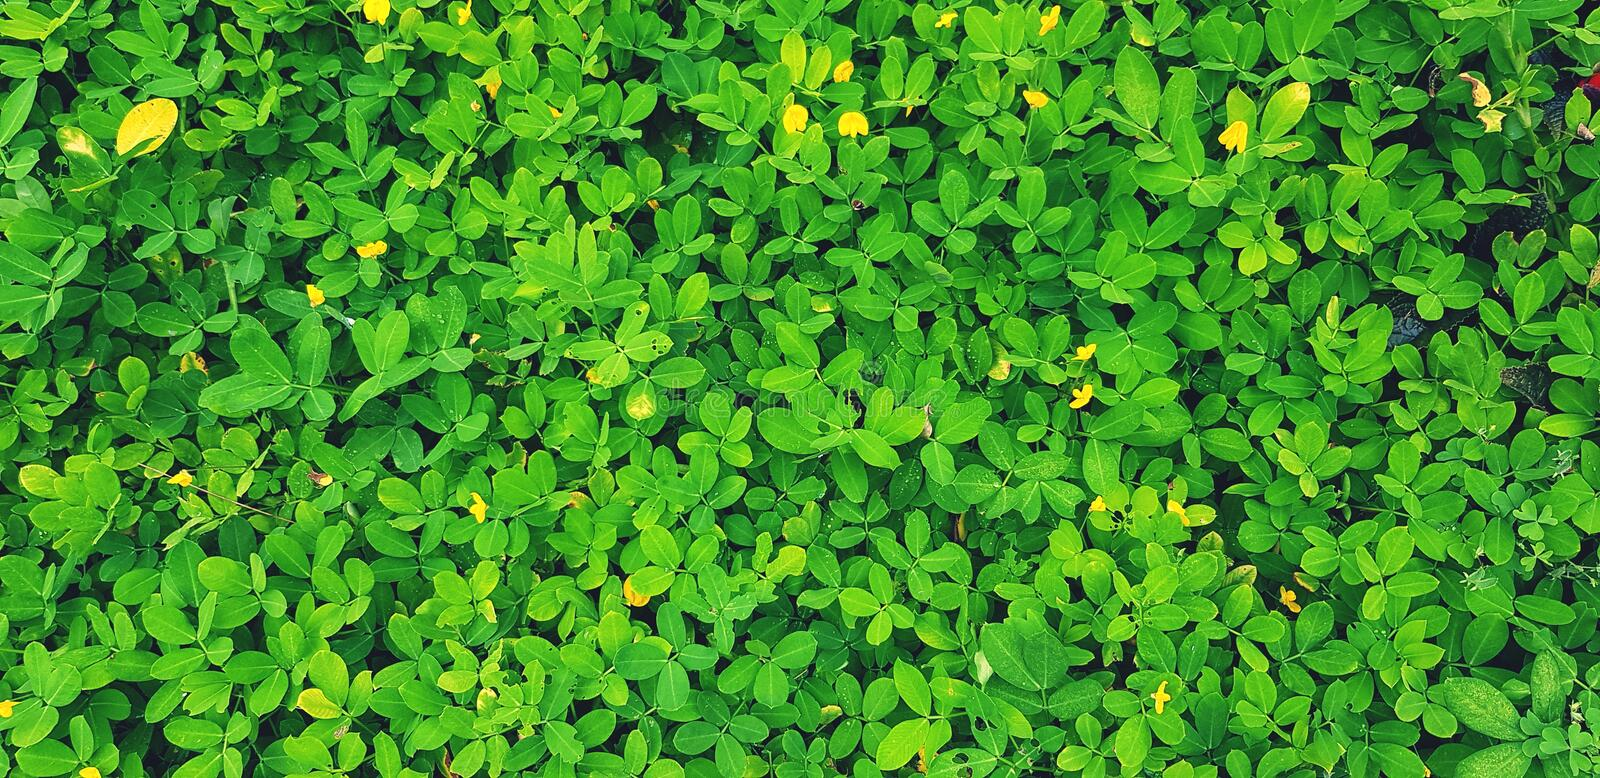 Freshness small green leaves and yellow flower for background at garden park in vintage tone. Natural wallpaper, Beauty of Nature and Fresh floral or leaf royalty free stock images